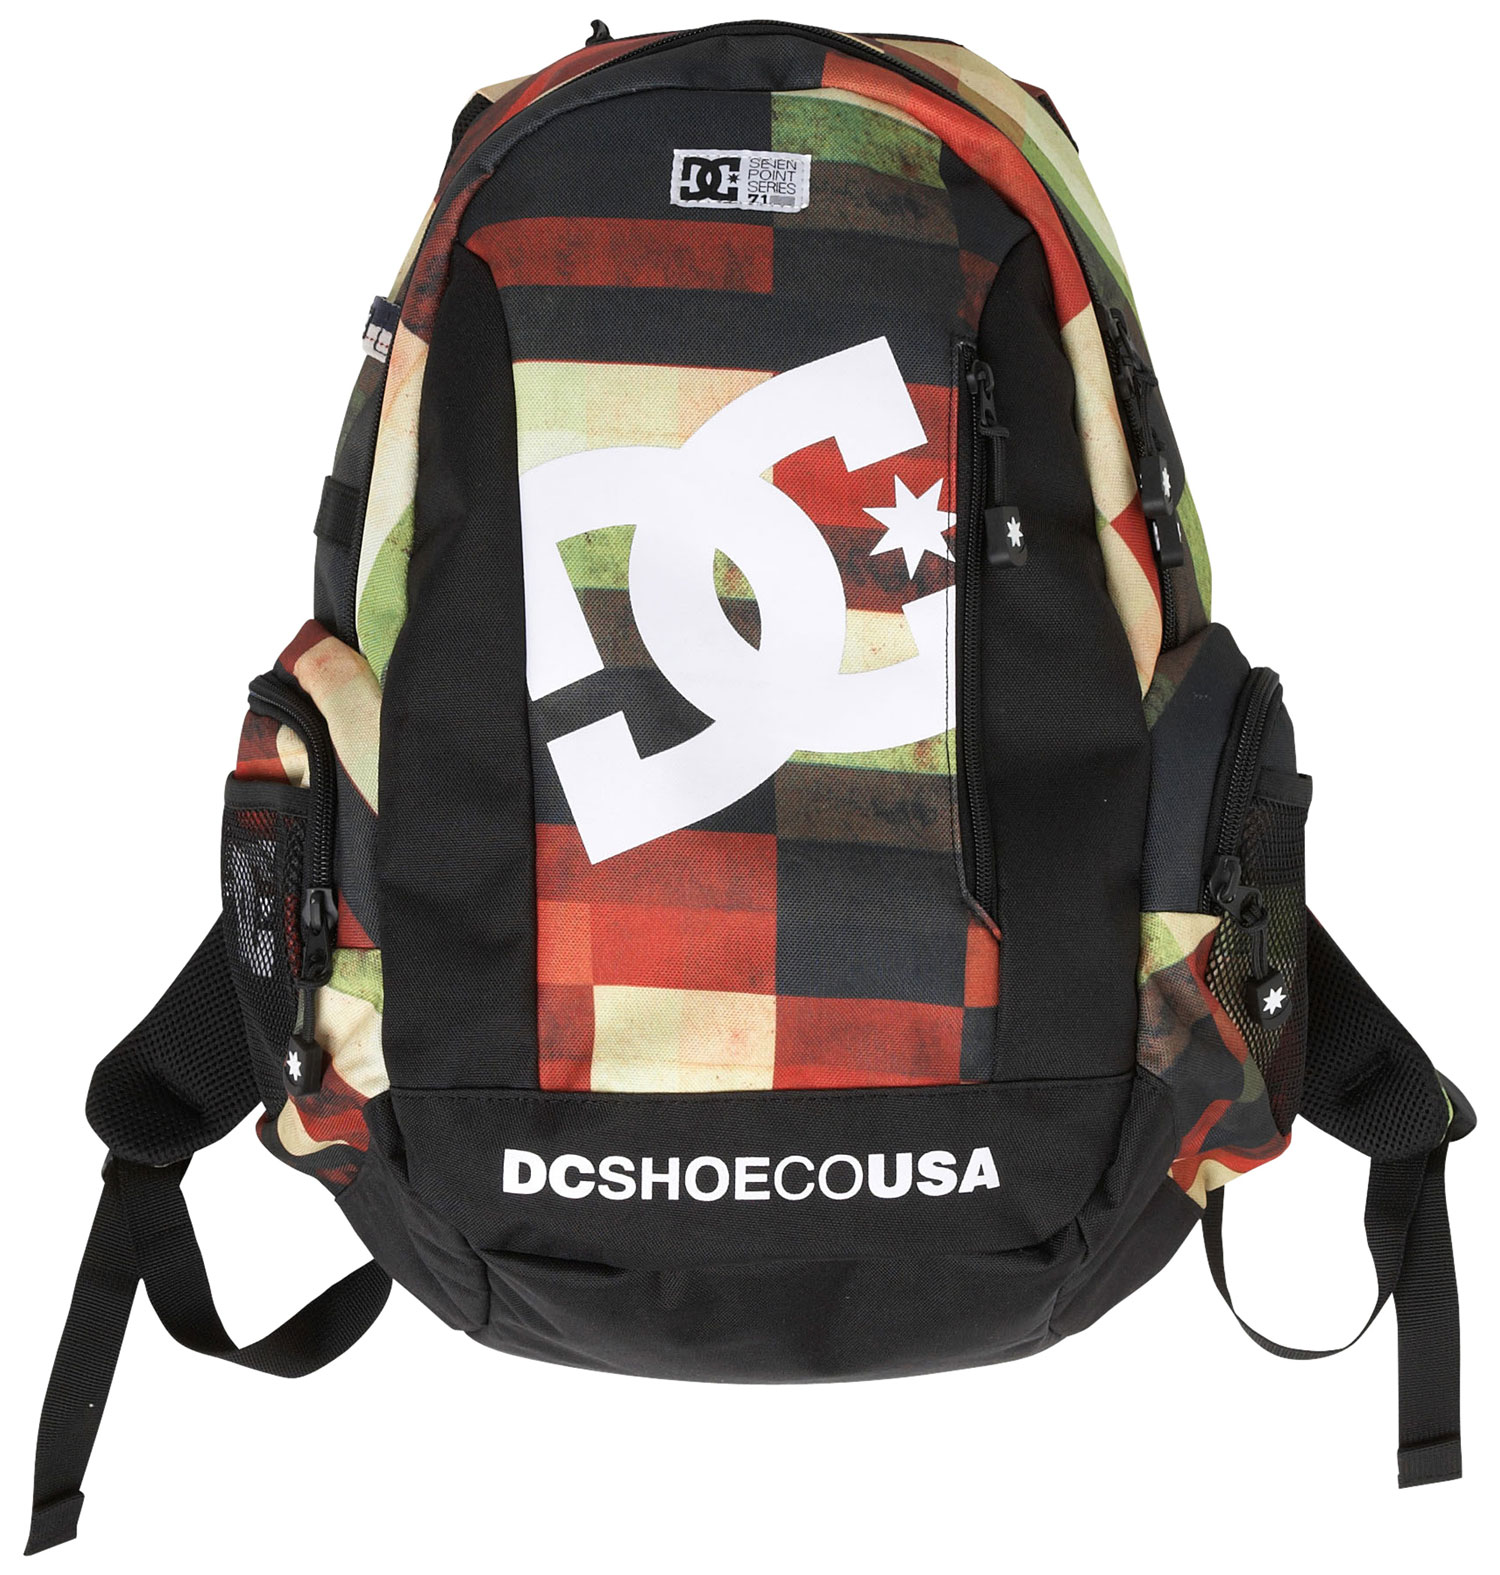 Key Features of the DC Seven Point 7 Backpack: 600d polyester shell fabric Ergonomic shape for proper weight distribution on back Dual side patch pockets with mesh slip pockets on top Vertical board carrying system with adjustable closure Front slip pocket Main compartment with elevated laptop sleeve and organizer Top slip media compartment Cohort system compatible Padded shoulder straps with integrated handle. - $55.00